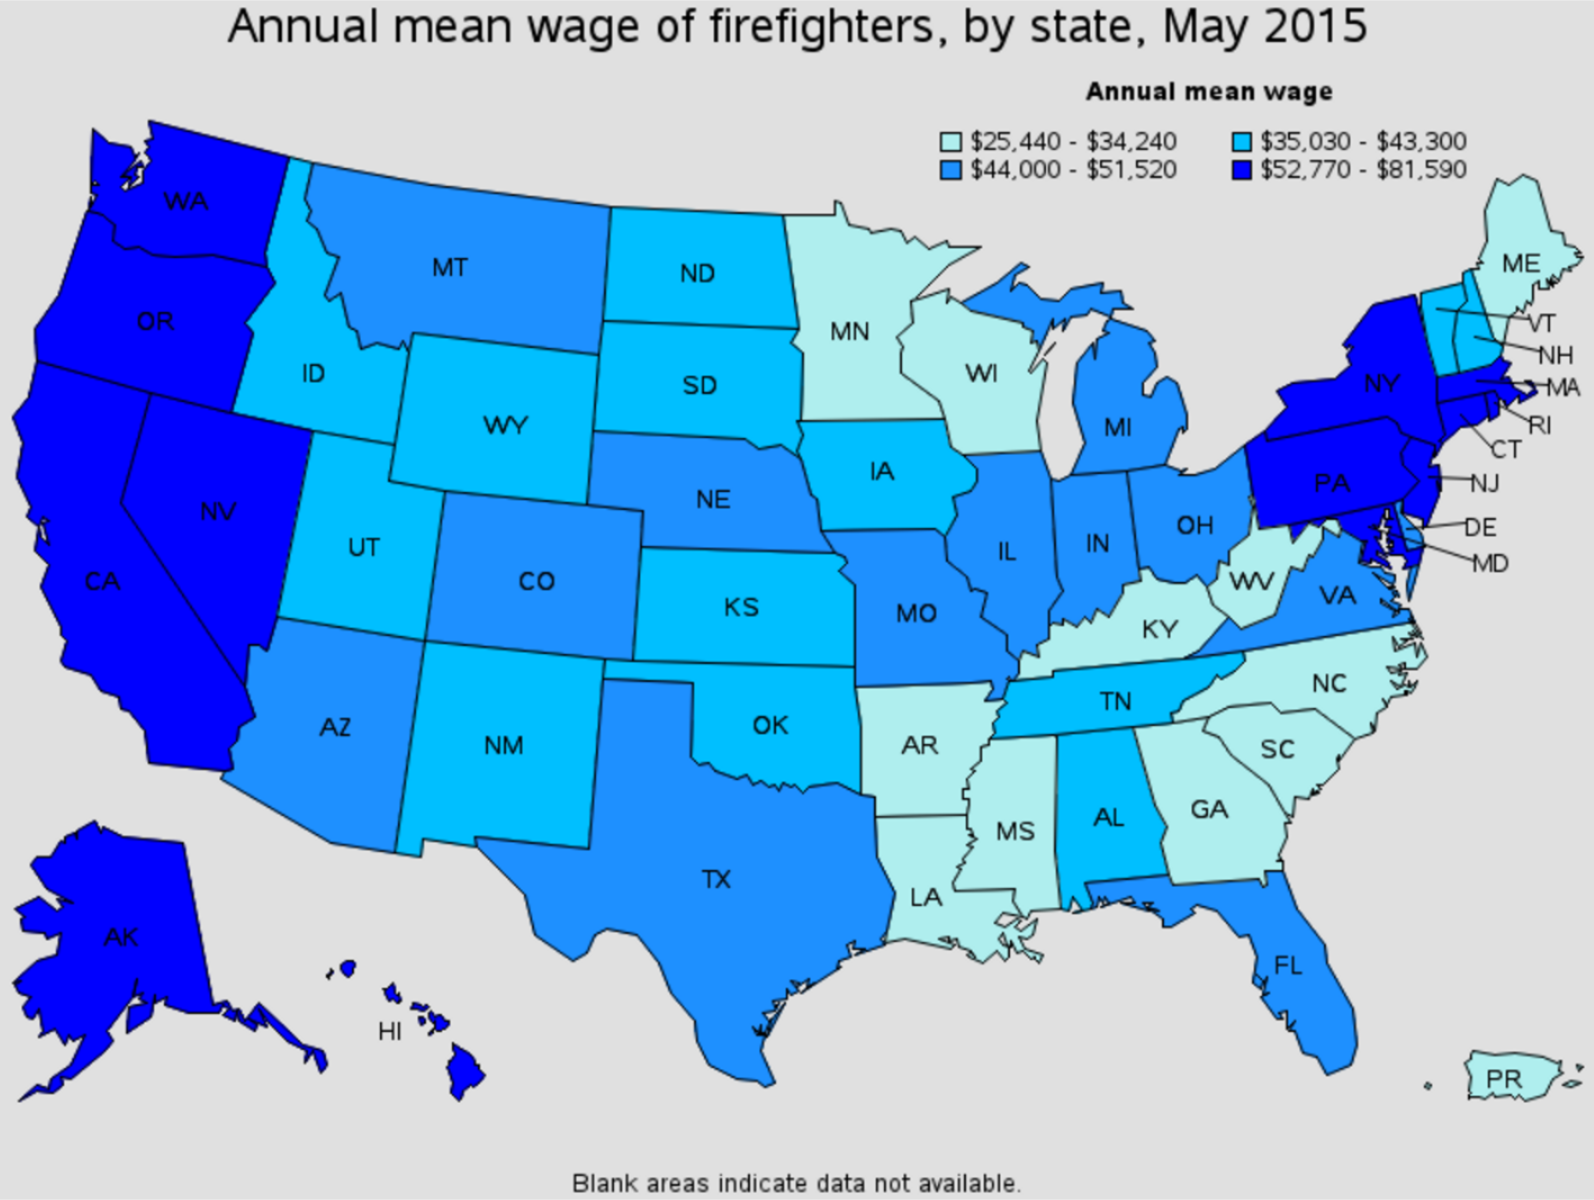 firefighter average salary by state Wood South Dakota